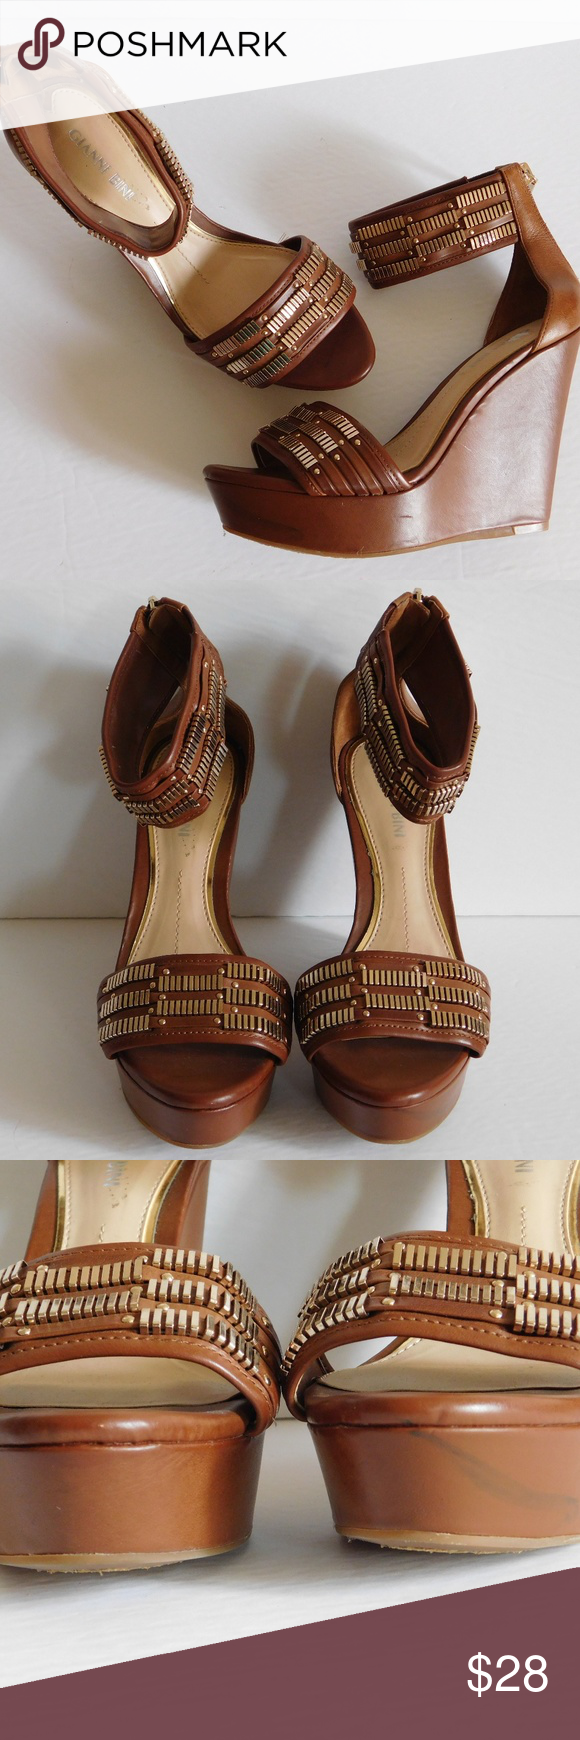 ec9ec1ed64 GIANNI BINI Brown & Gold Studded Wedges This is a pair of gorgeous brown  and